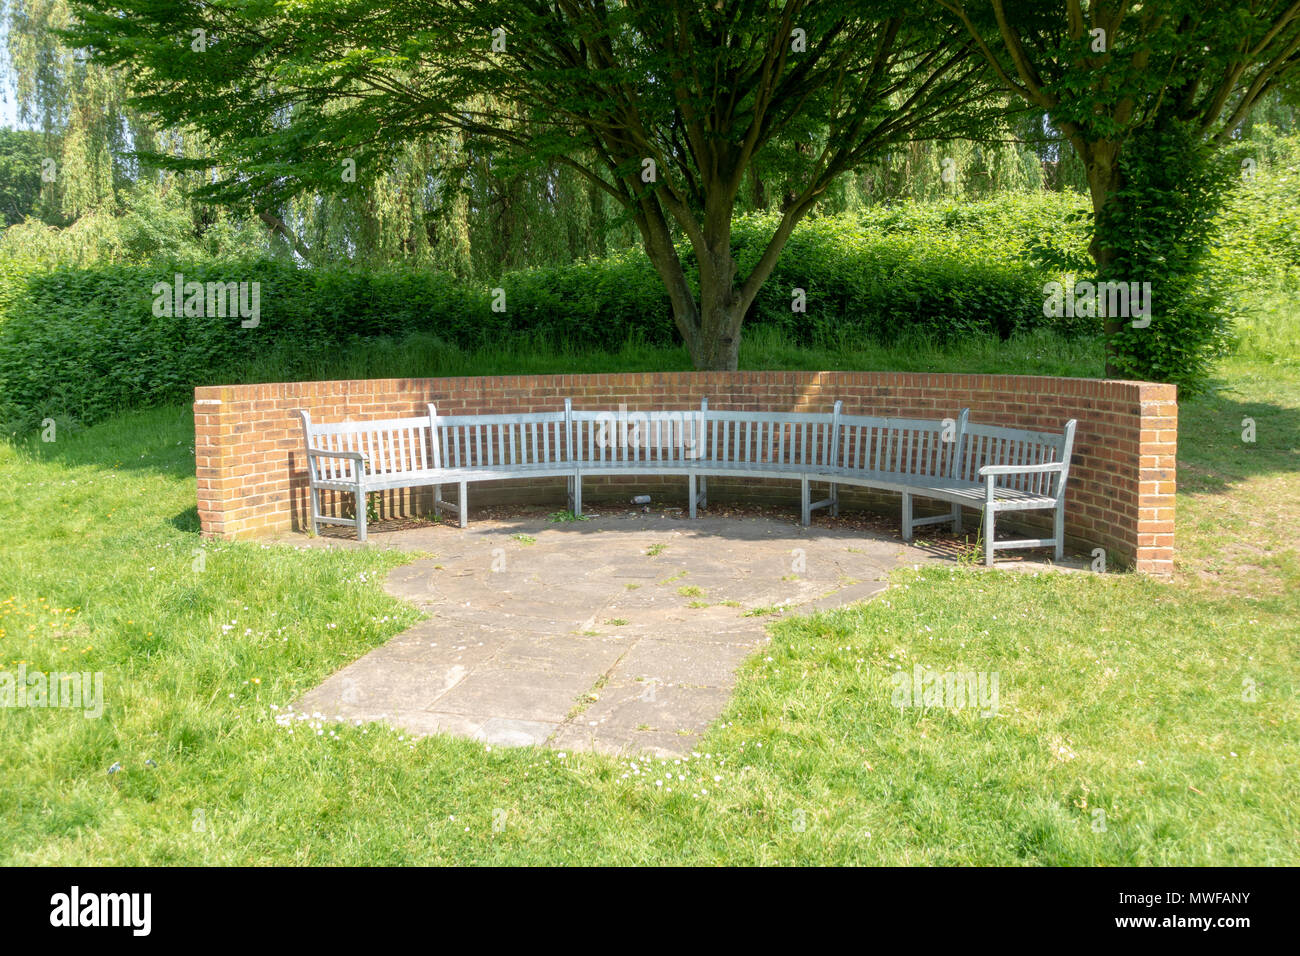 Memorial to the British European Airways air disaster in Waters Drive recreation ground, Staines Moor, UK. - Stock Image